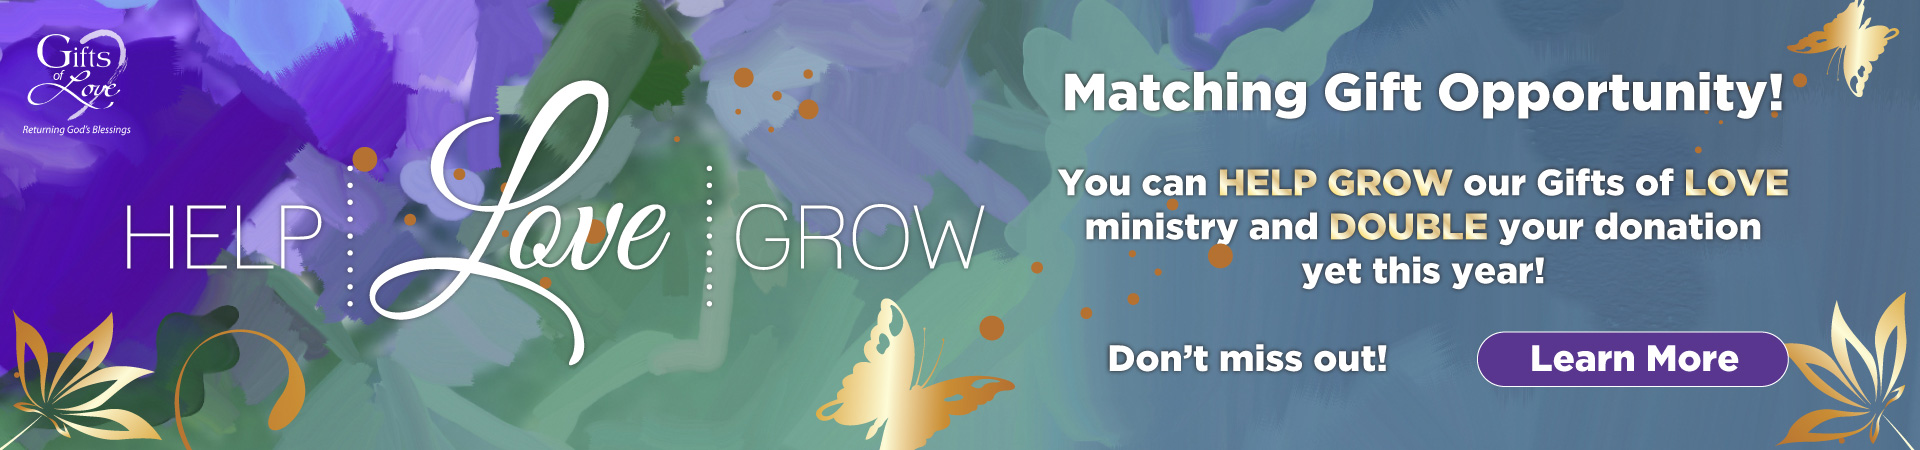 Help Love Grow matching gift opportunity. Learn More